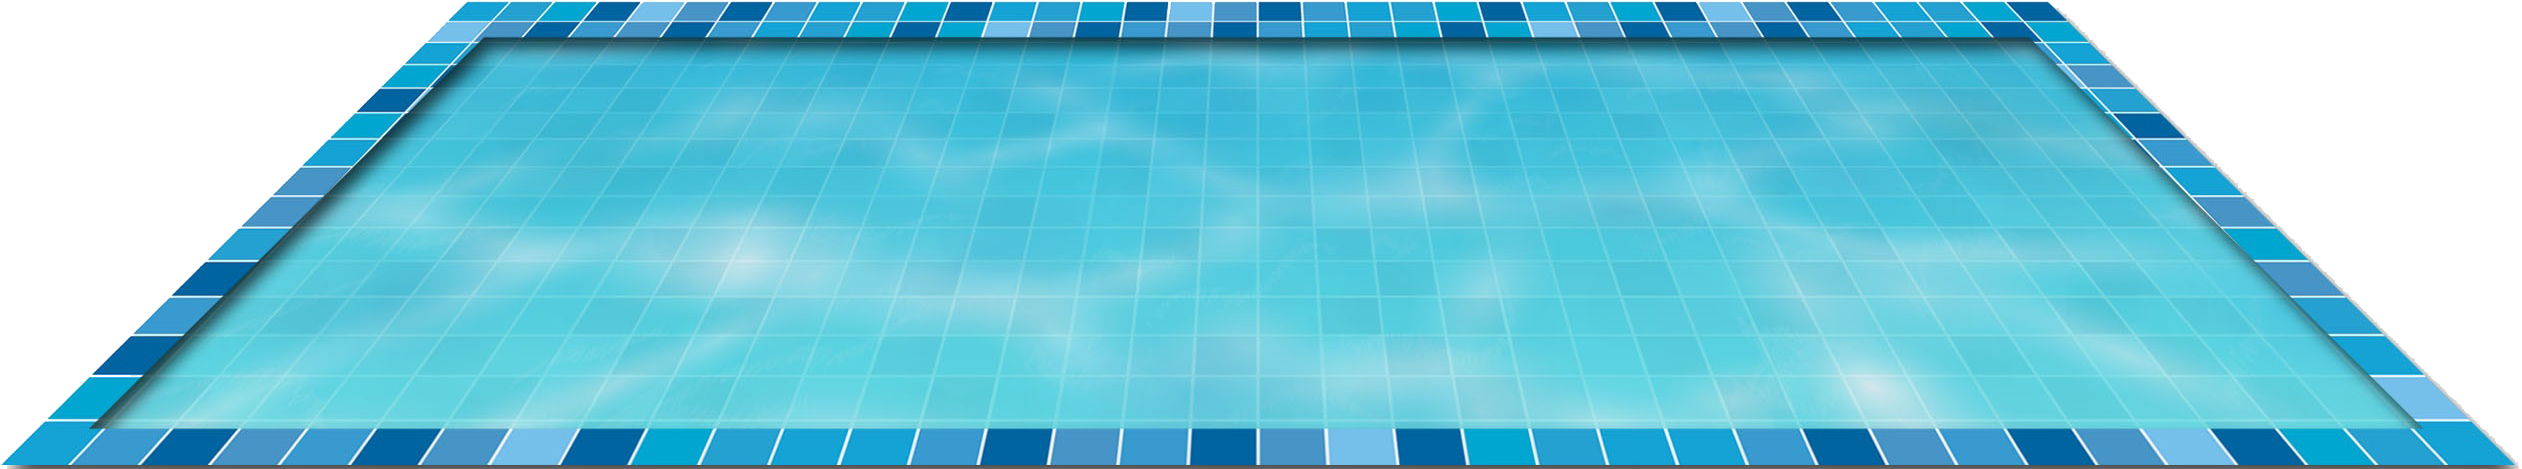 Swimming pool PNG Images.